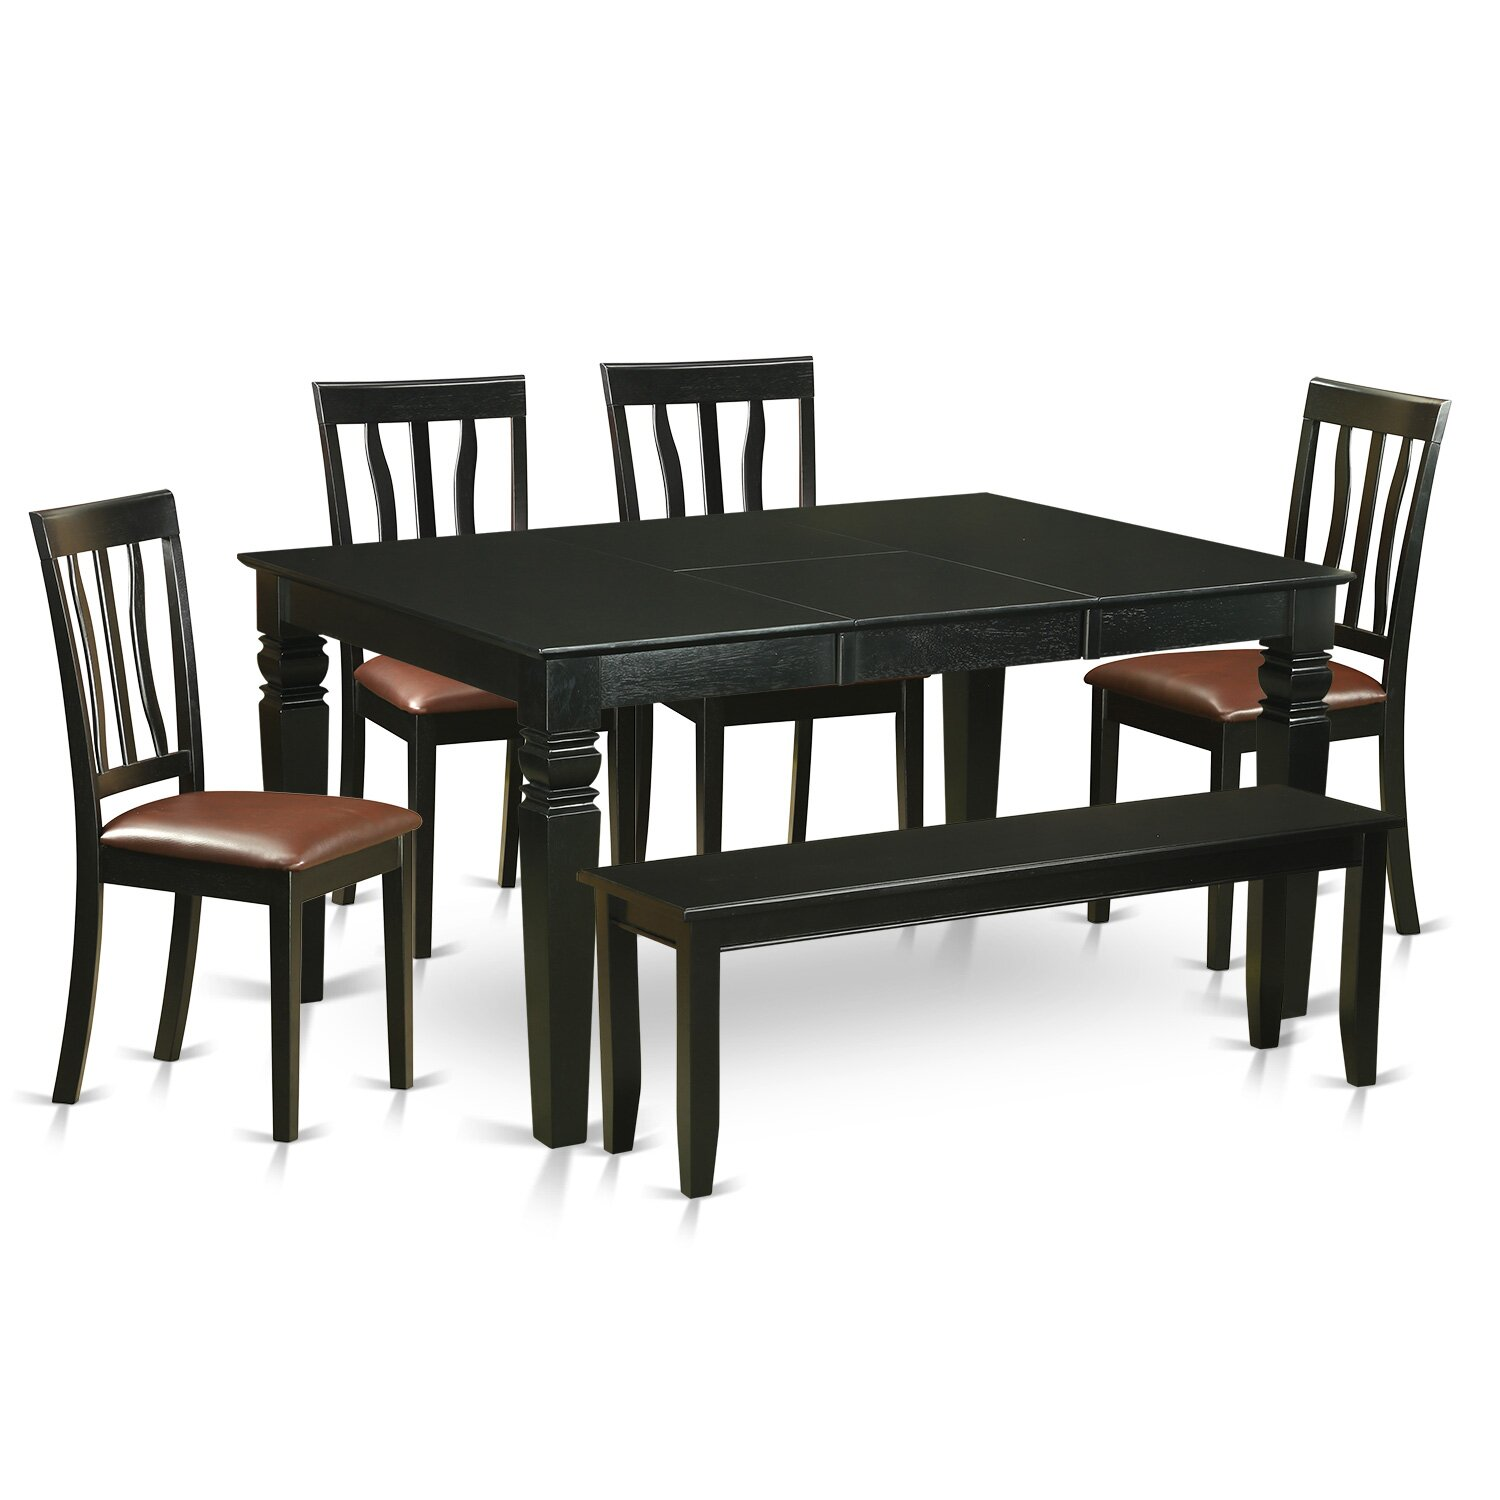 Wooden importers weston 6 piece dining set wayfair for Dining room sets 4 chairs